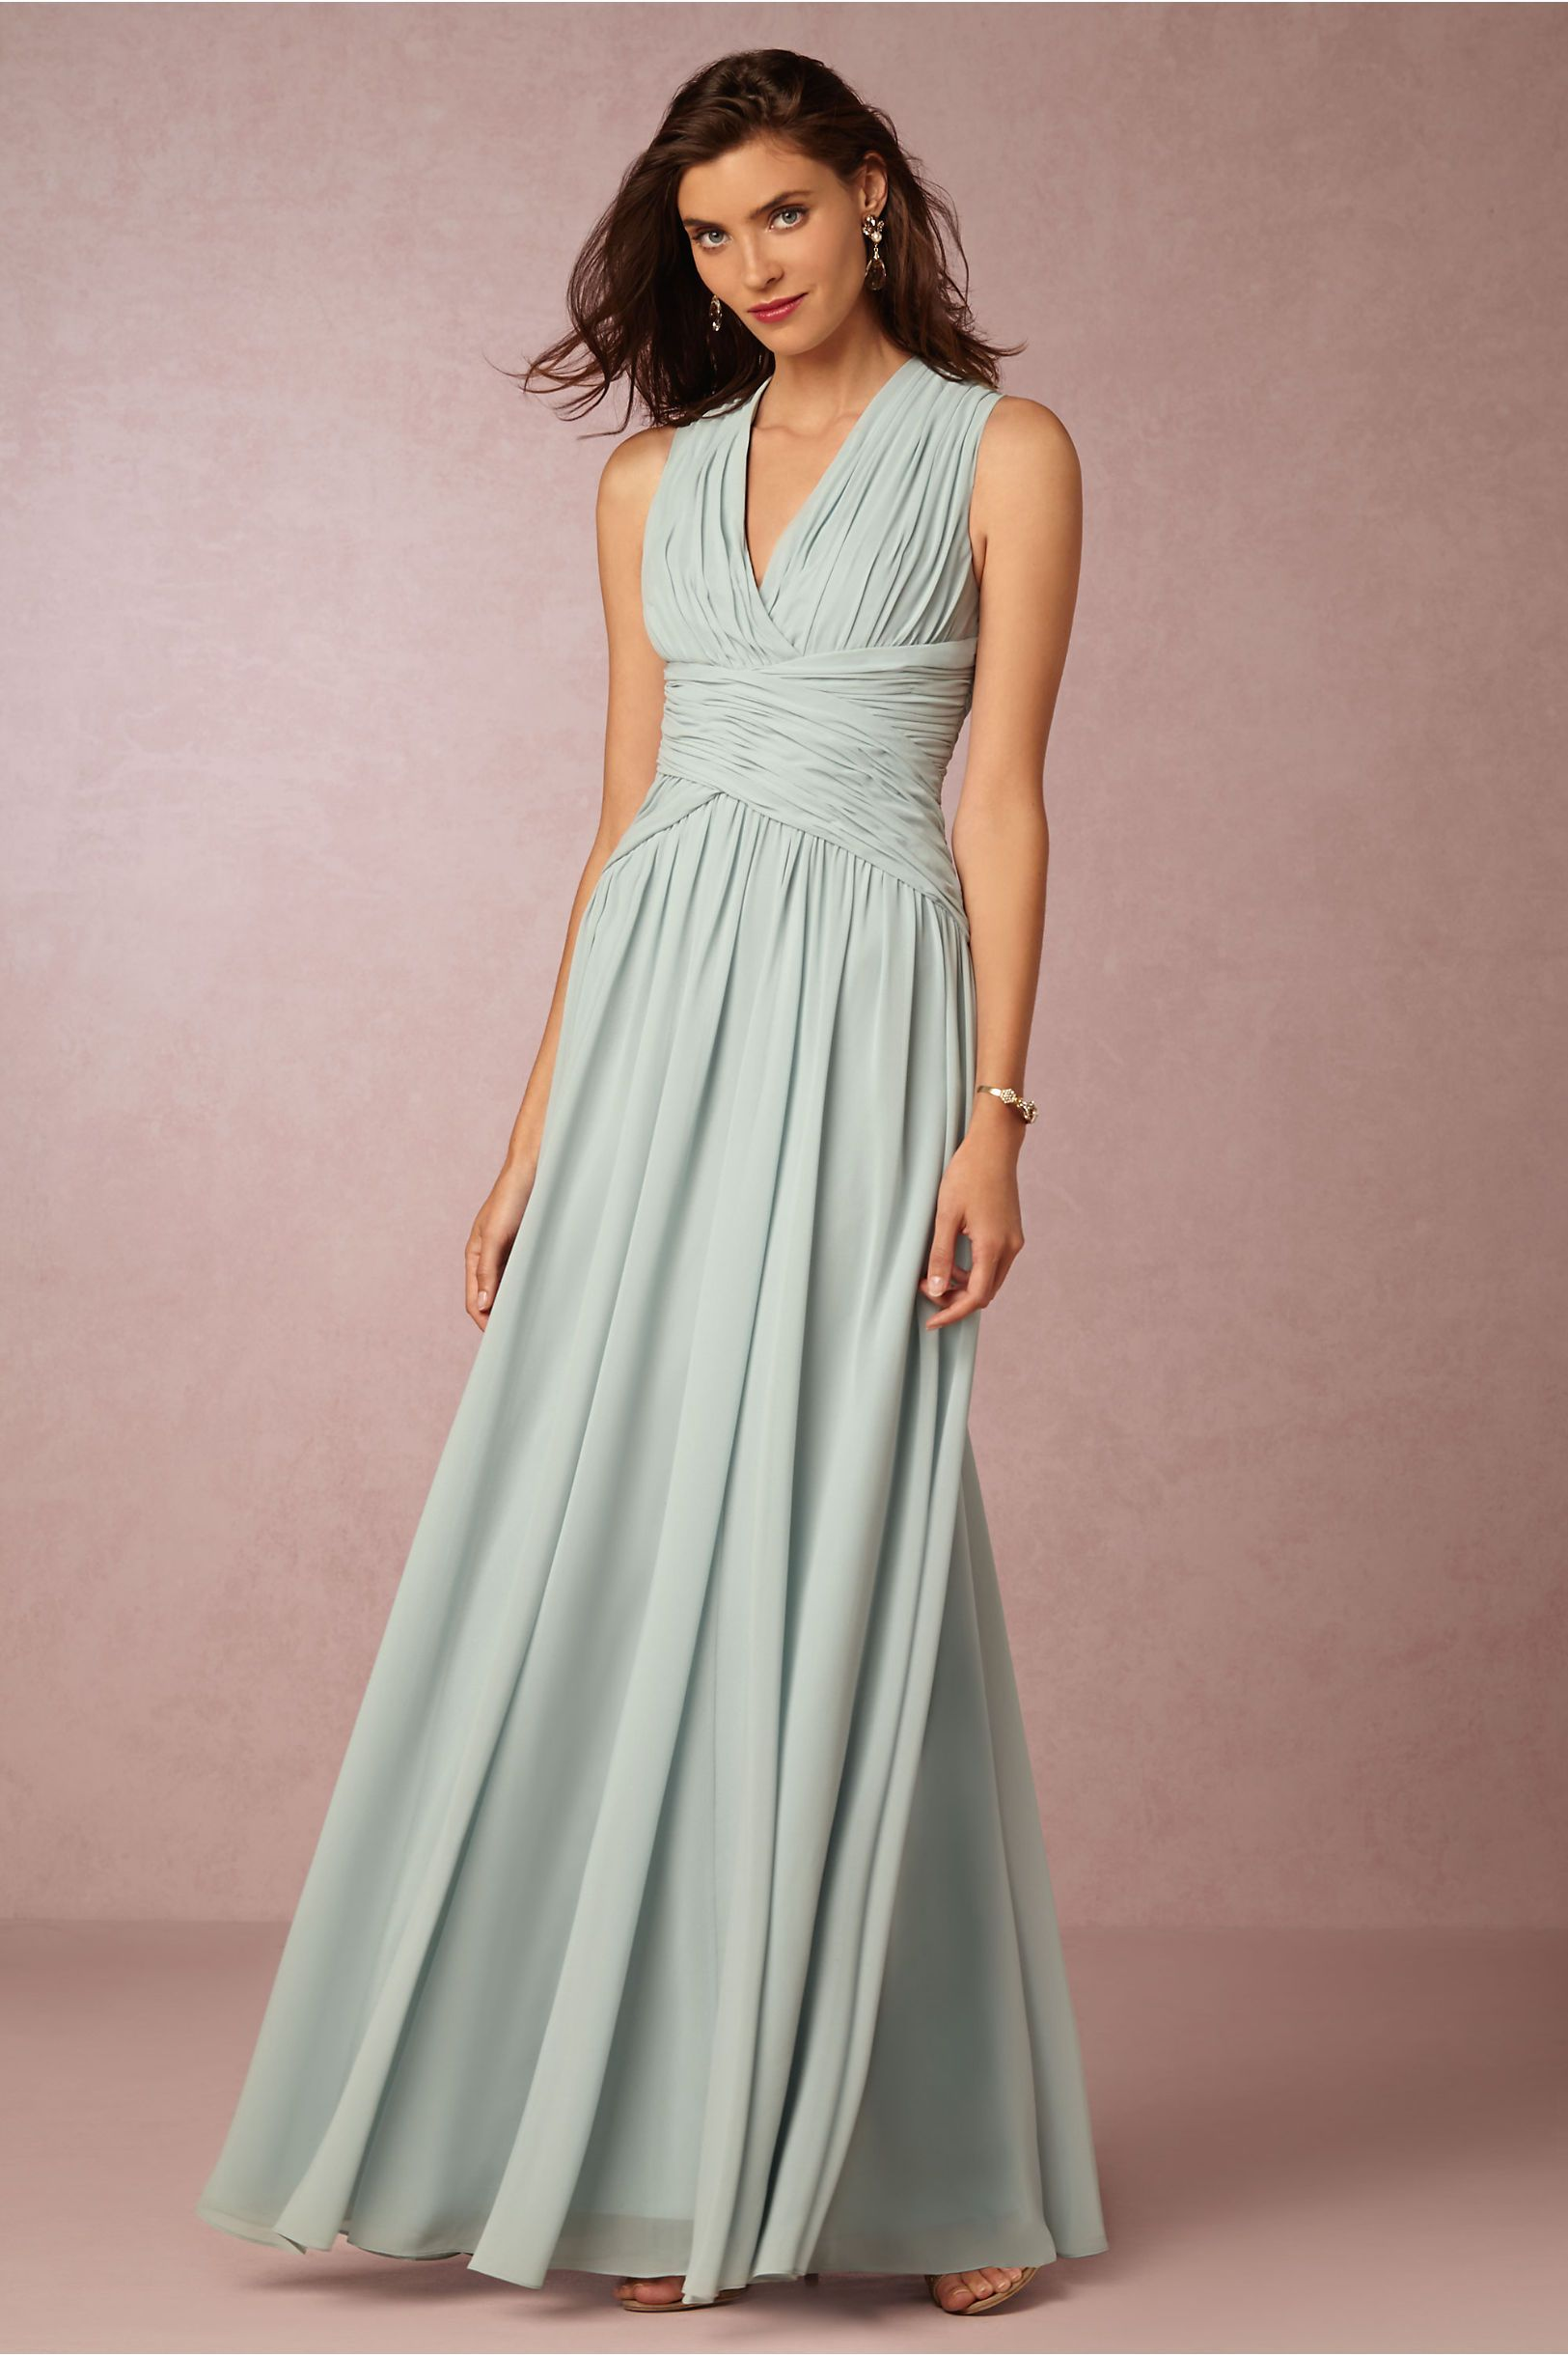 Paloma bridesmaid dresses at bhldn love color bella blue v neck criss cross pleated floor length chiffon bridesmaid dress ombrellifo Choice Image